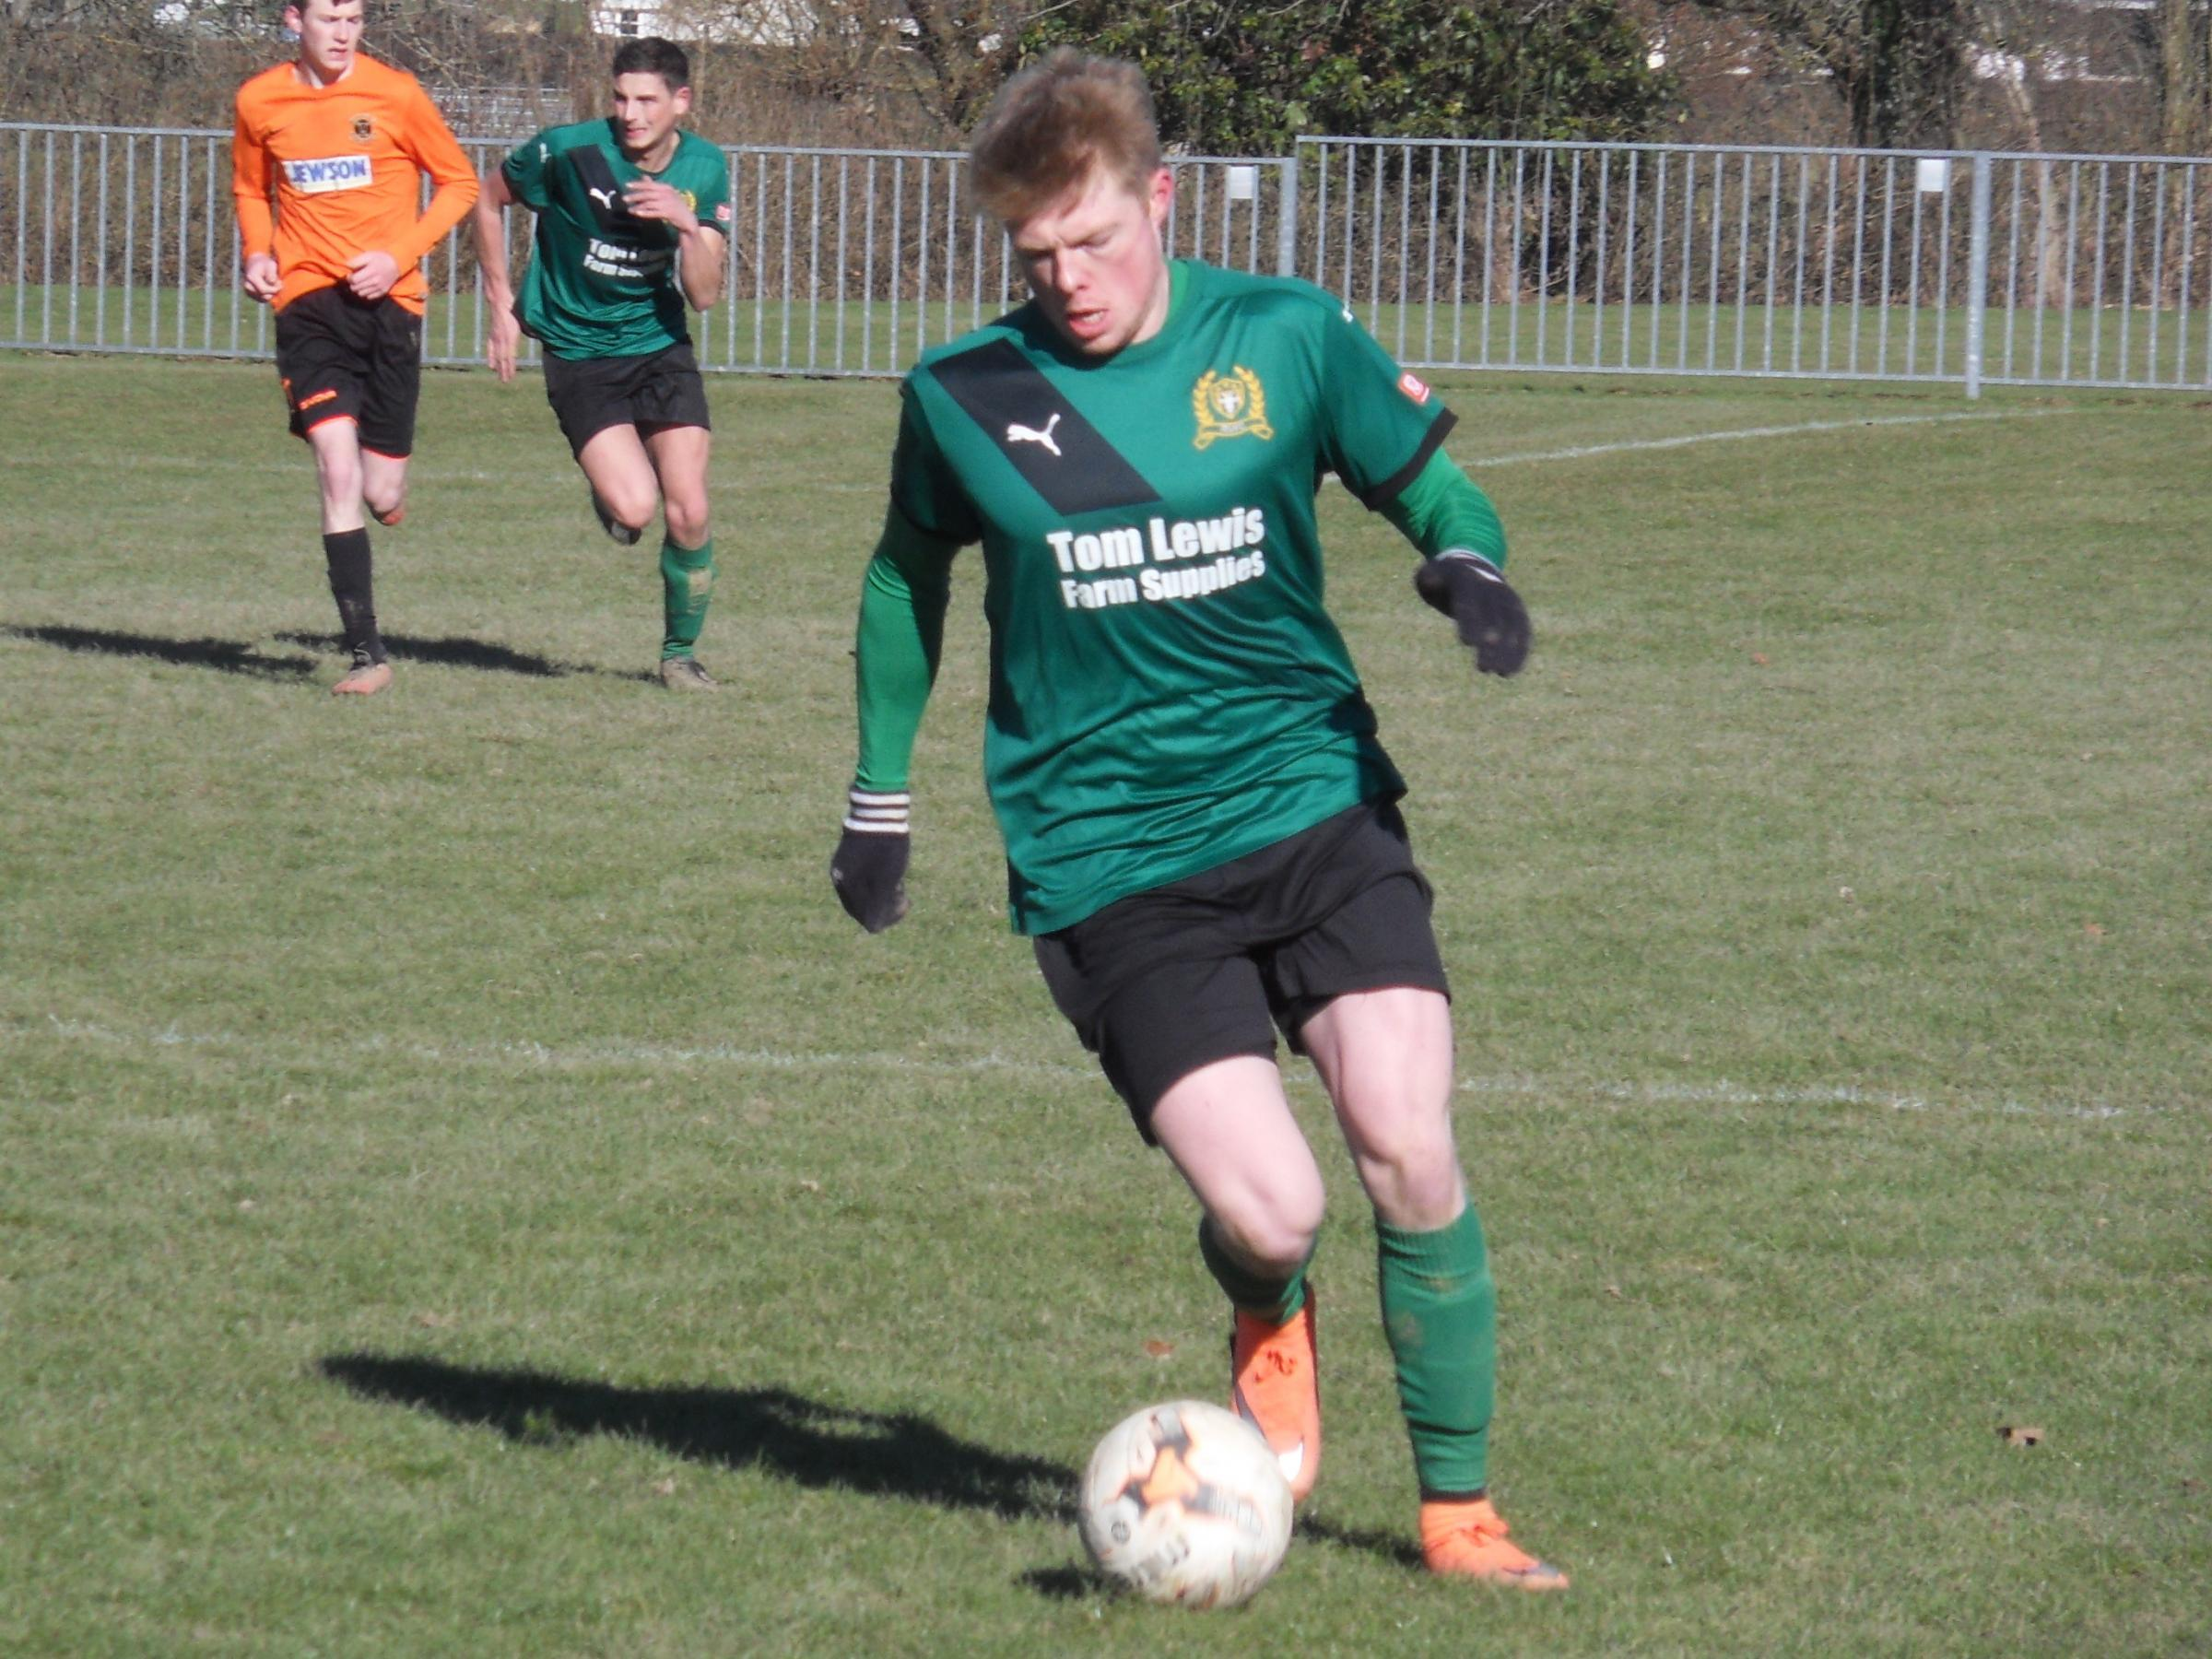 Joey Price in action for Radnor Valley against Builth Wells. Picture by Stuart Townsend.